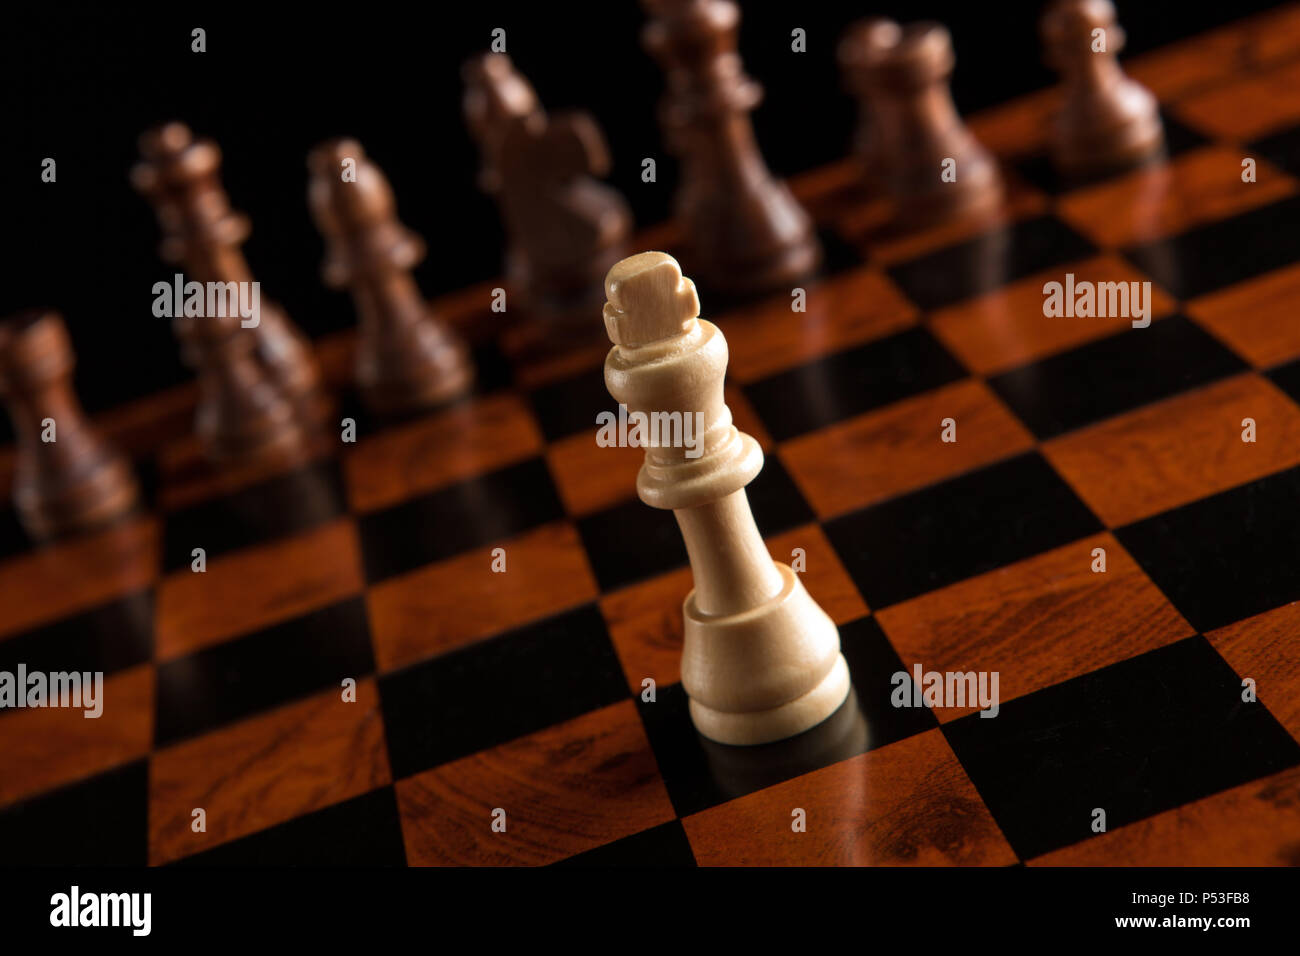 chess pieces with the king in the center - Stock Image